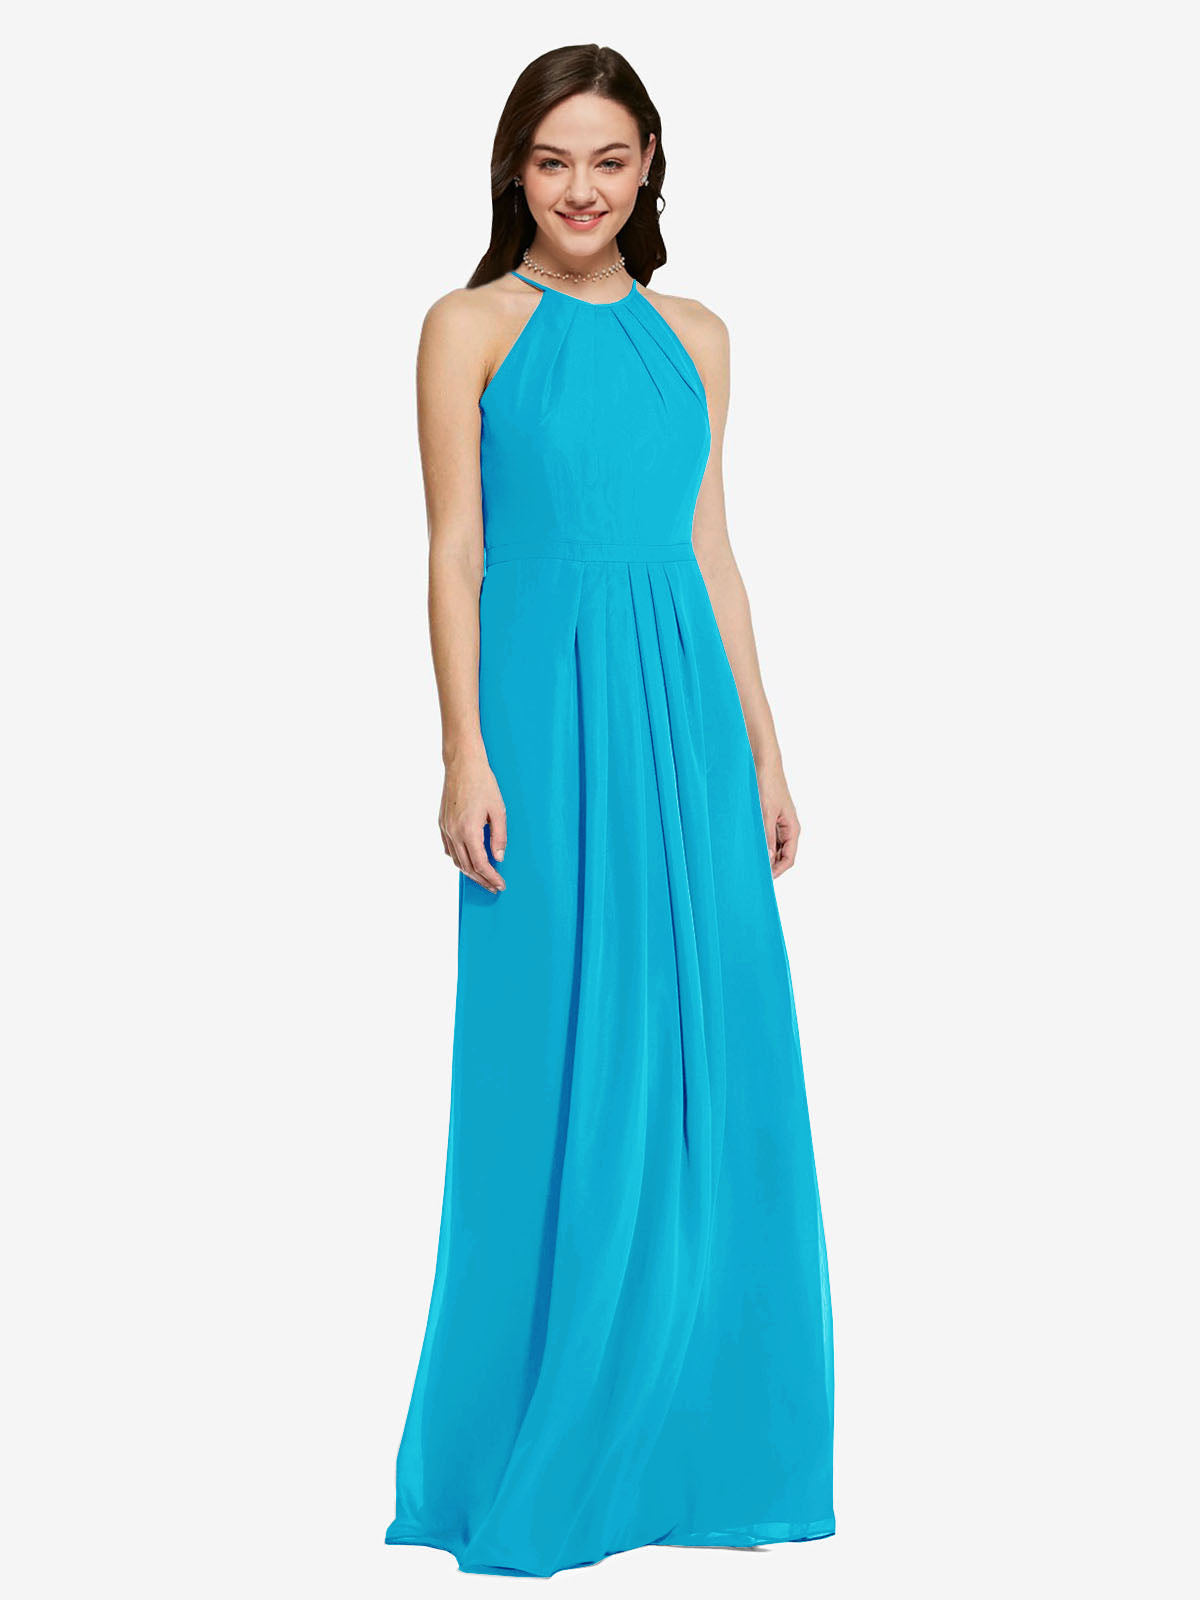 Long Sheath High Neck Halter Sleeveless Turquoise Chiffon Bridesmaid Dress Koloti